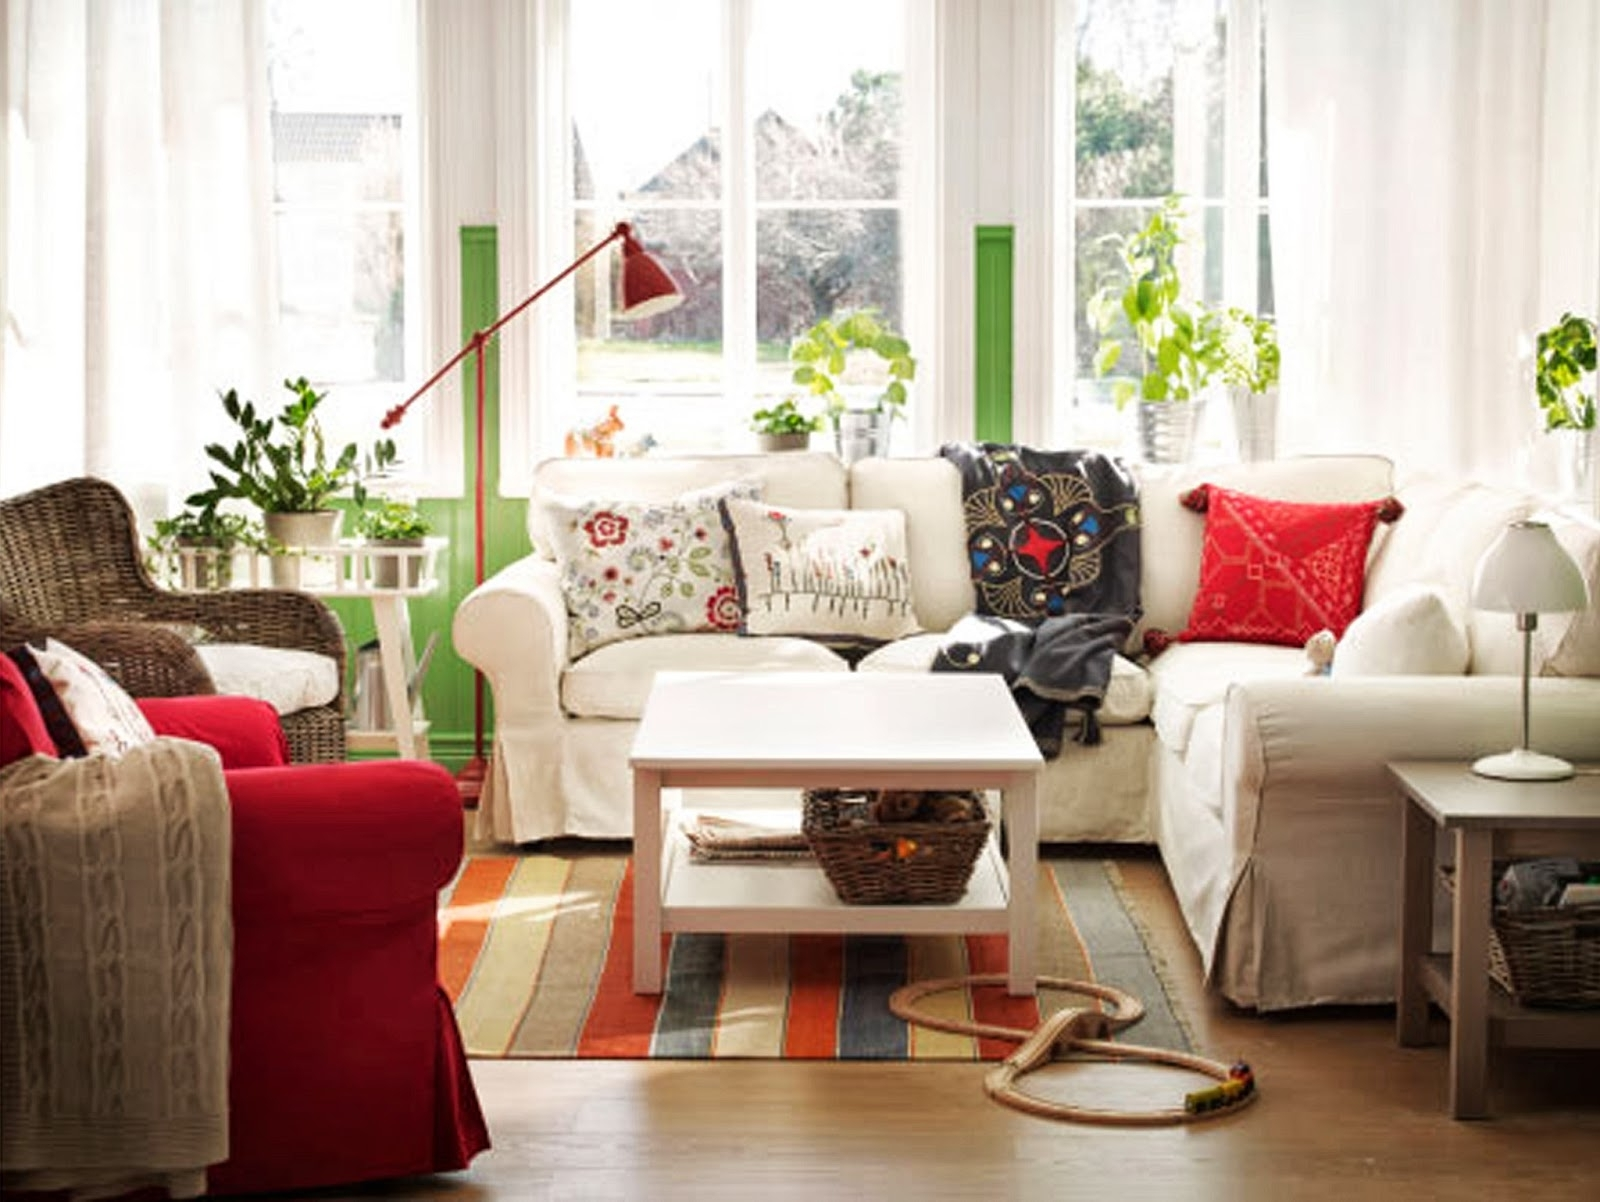 Charming Ikea Small Living Room Intended For Most Up To Date Cottage Style Sofas And Chairs (View 2 of 15)